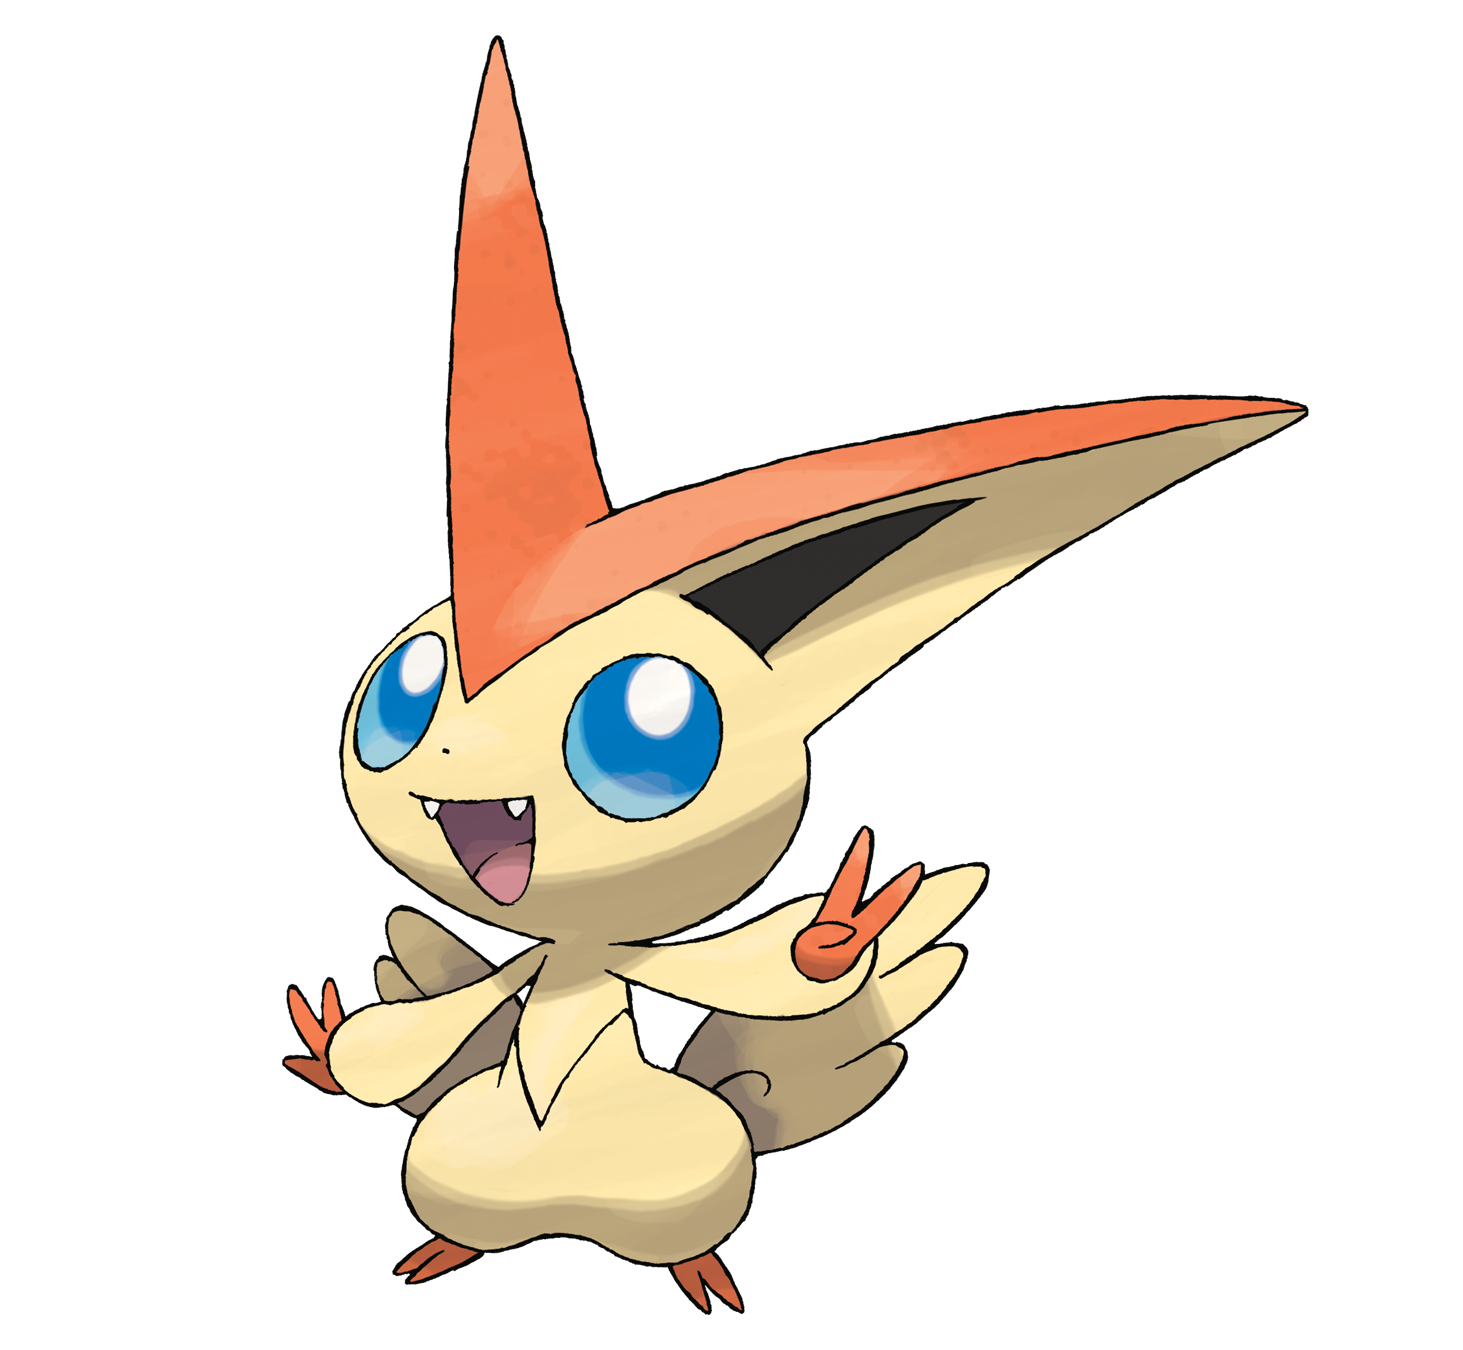 http://images.wikia.com/es.pokemon/images/4/45/Victini.png